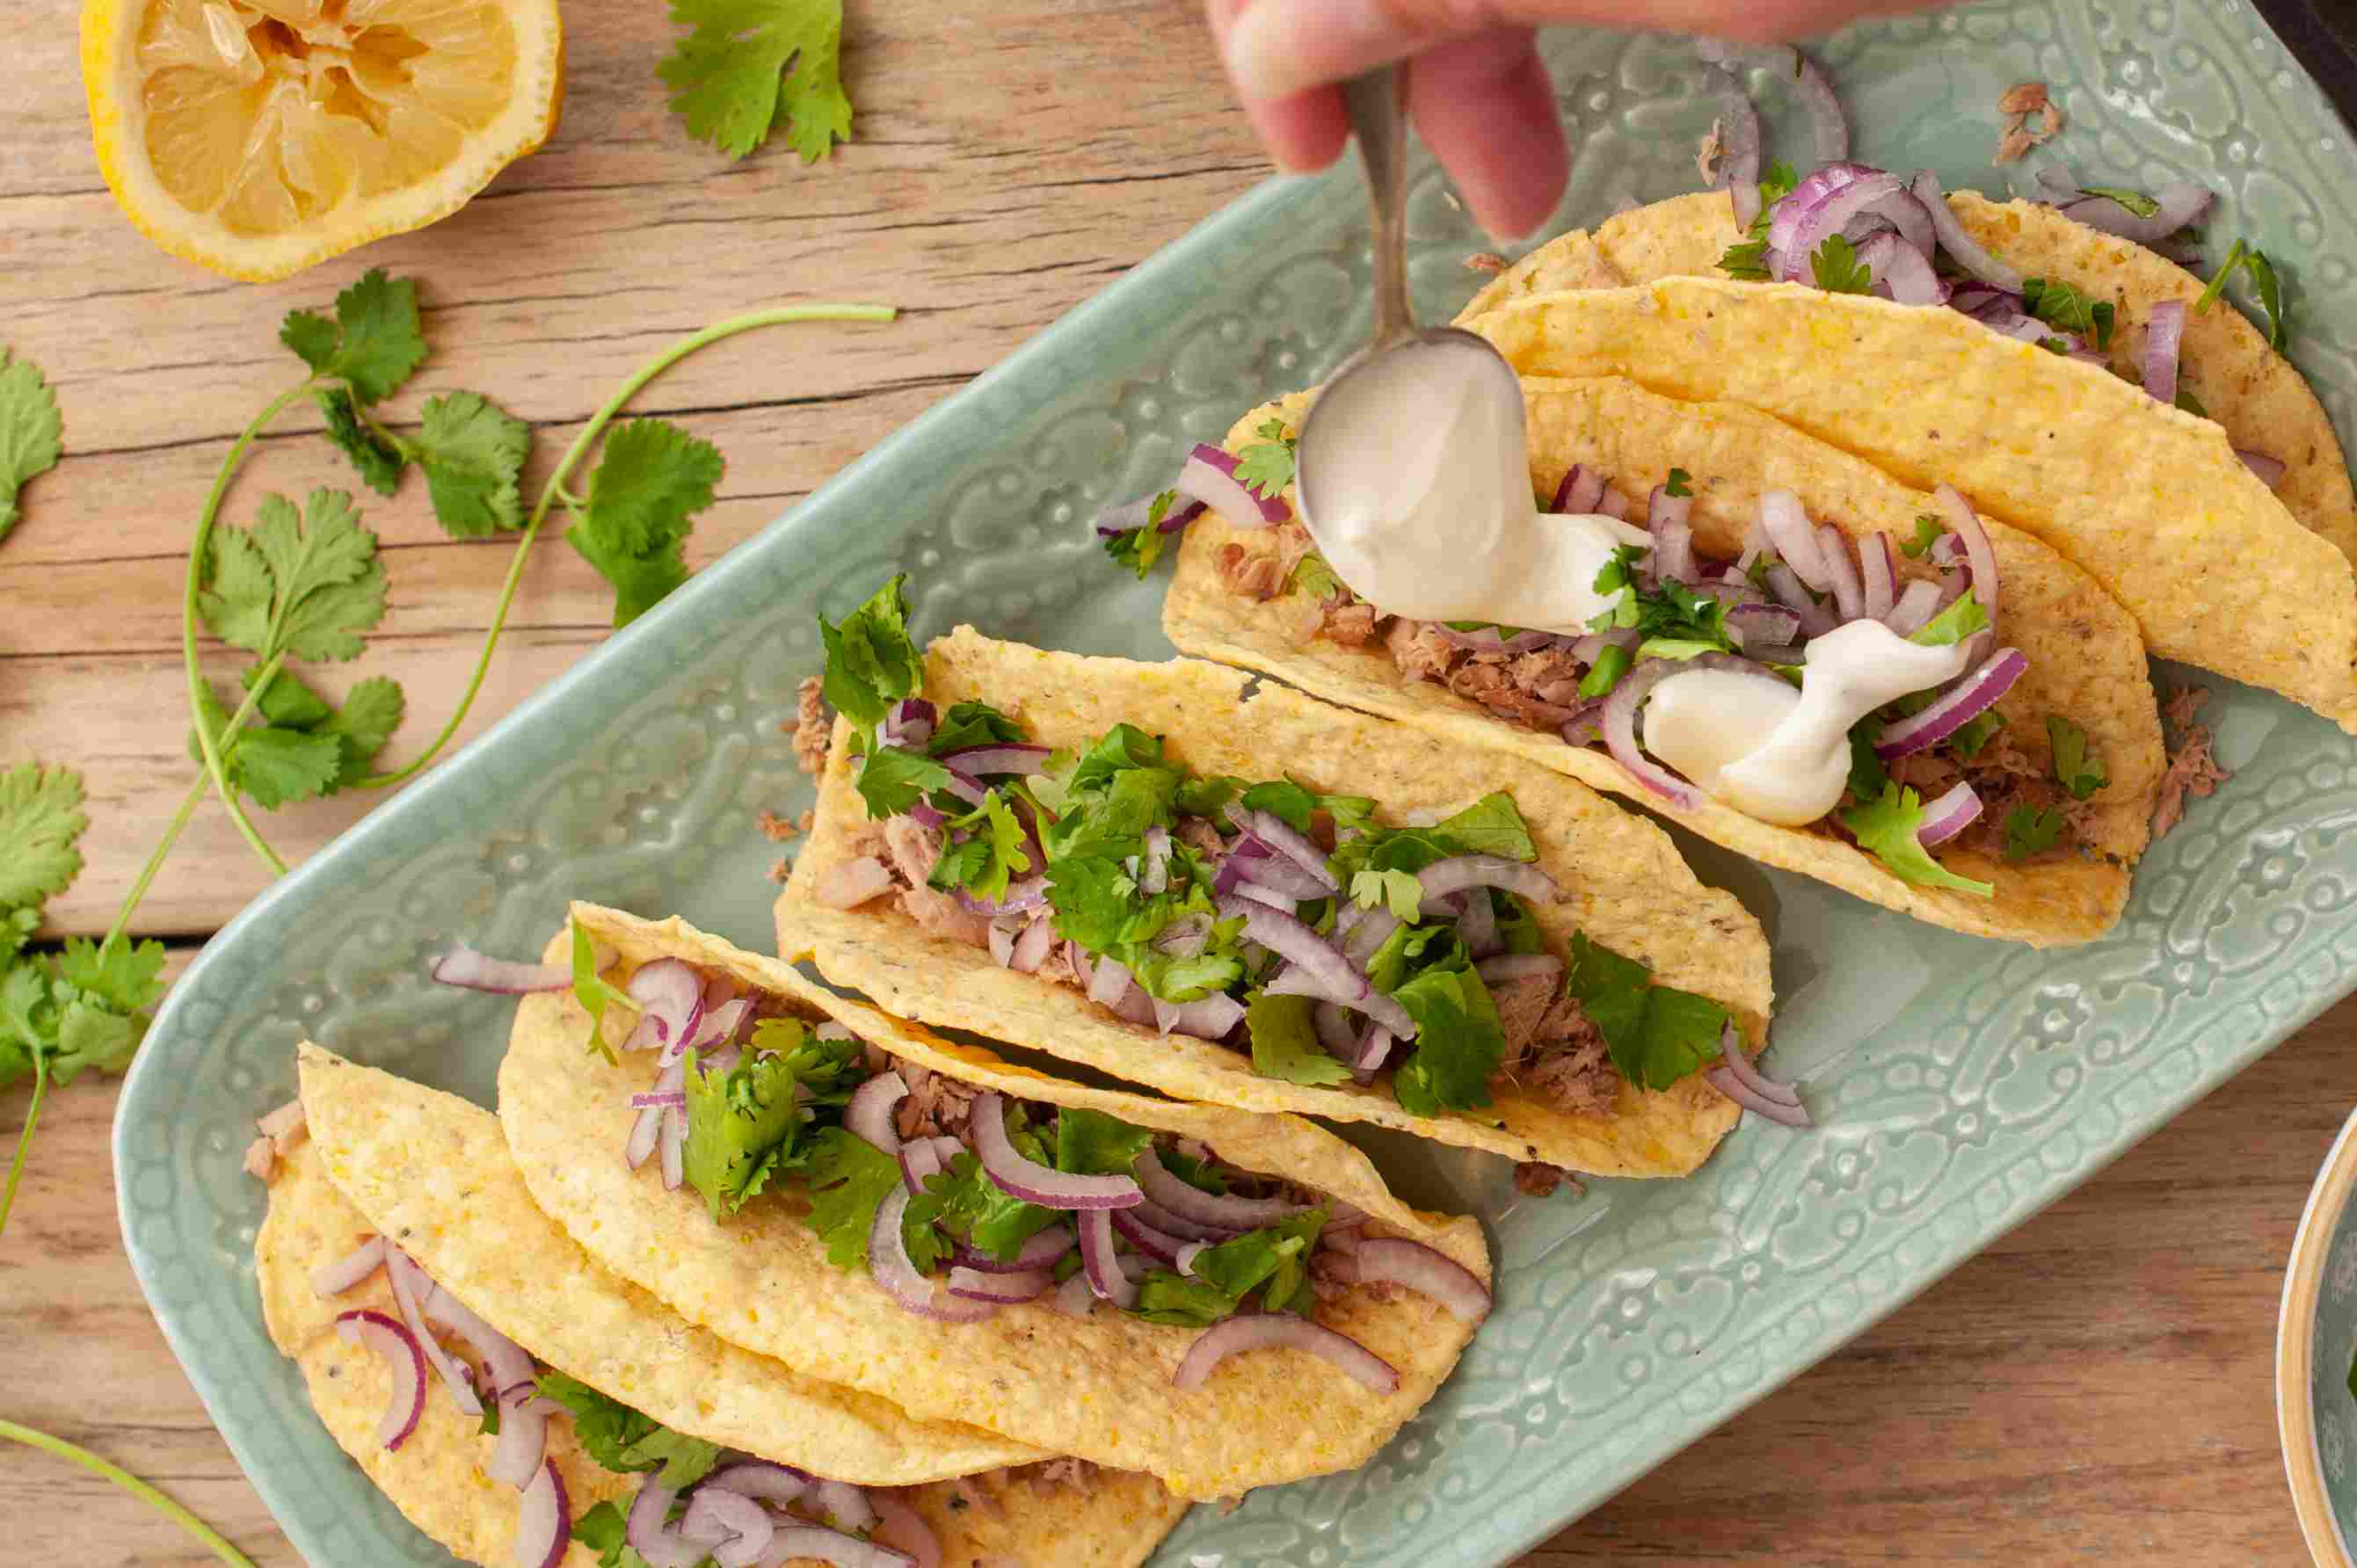 Topping tuna tacos with cream sauce